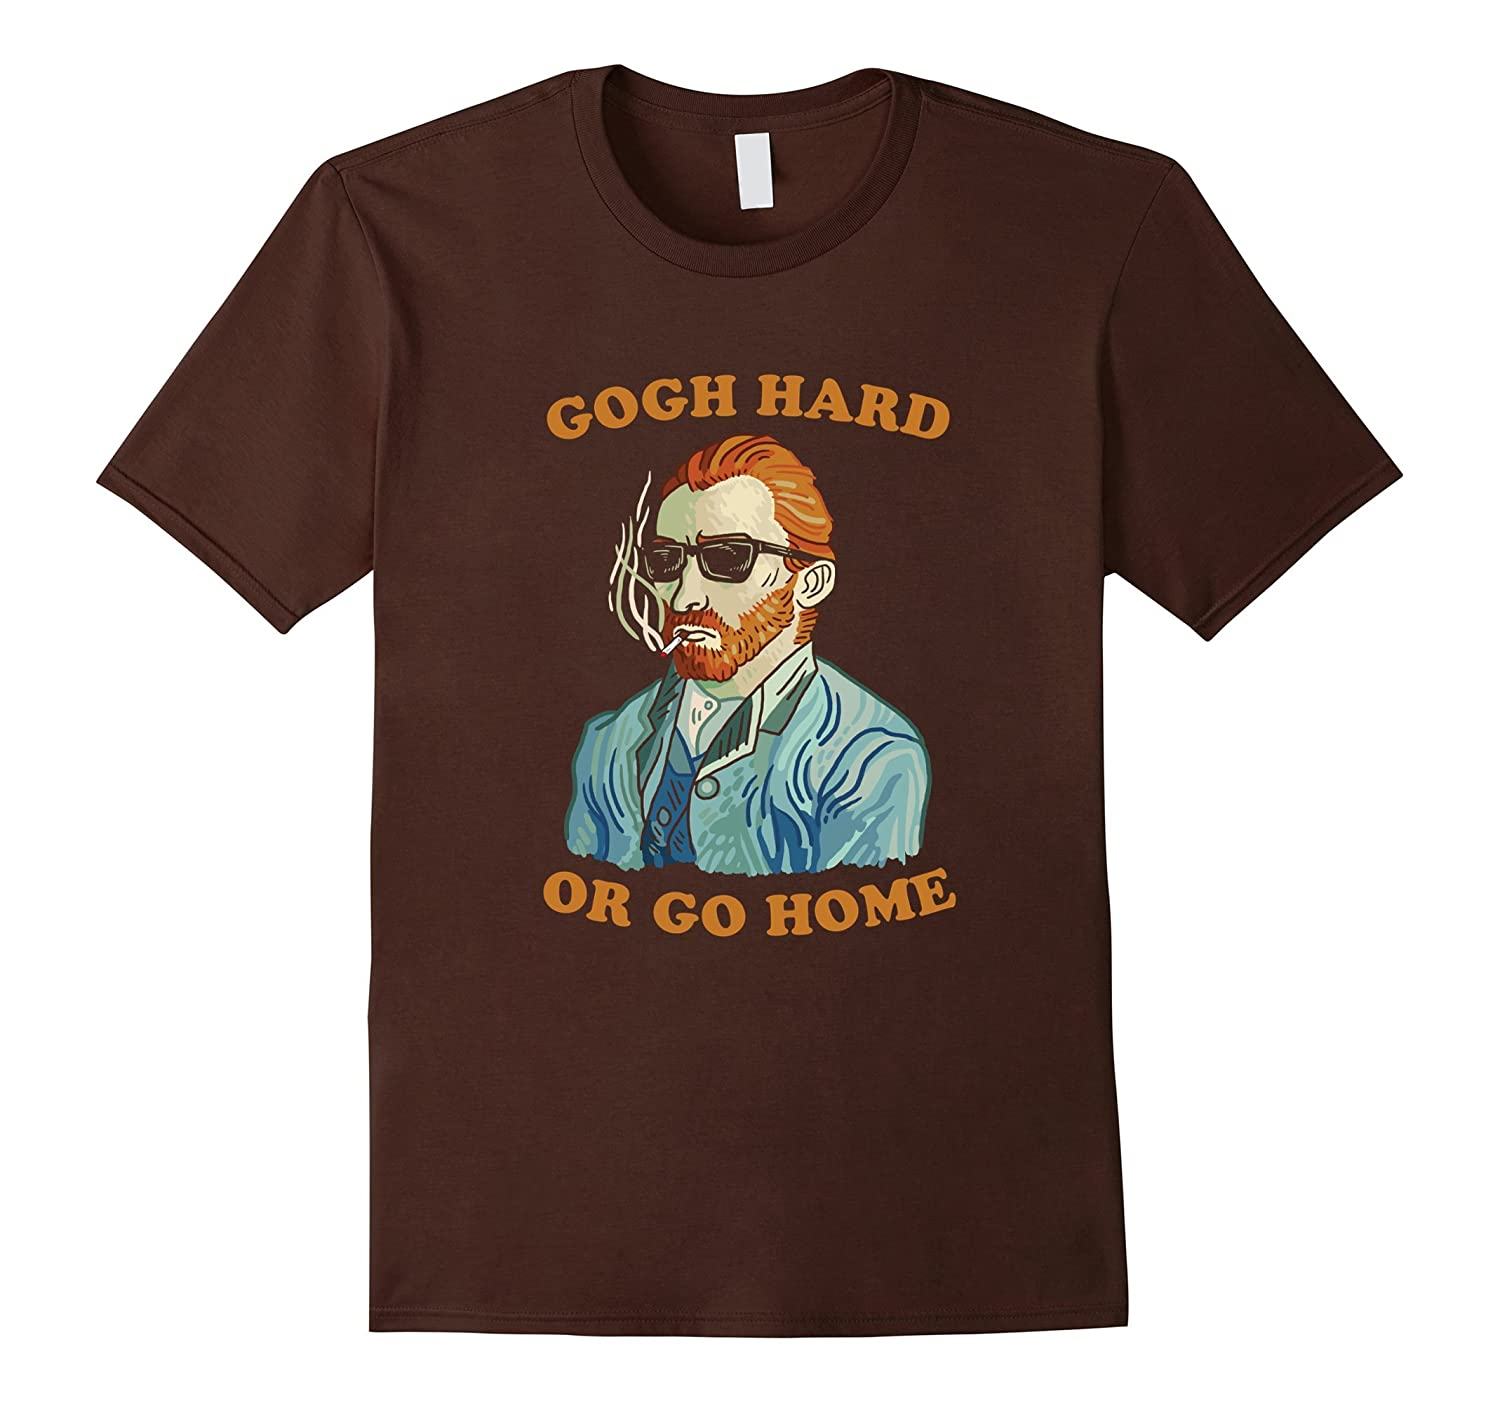 Gogh Hard Or Gogh Home T-Shirt - Vincent Van Funny Pun Art-BN